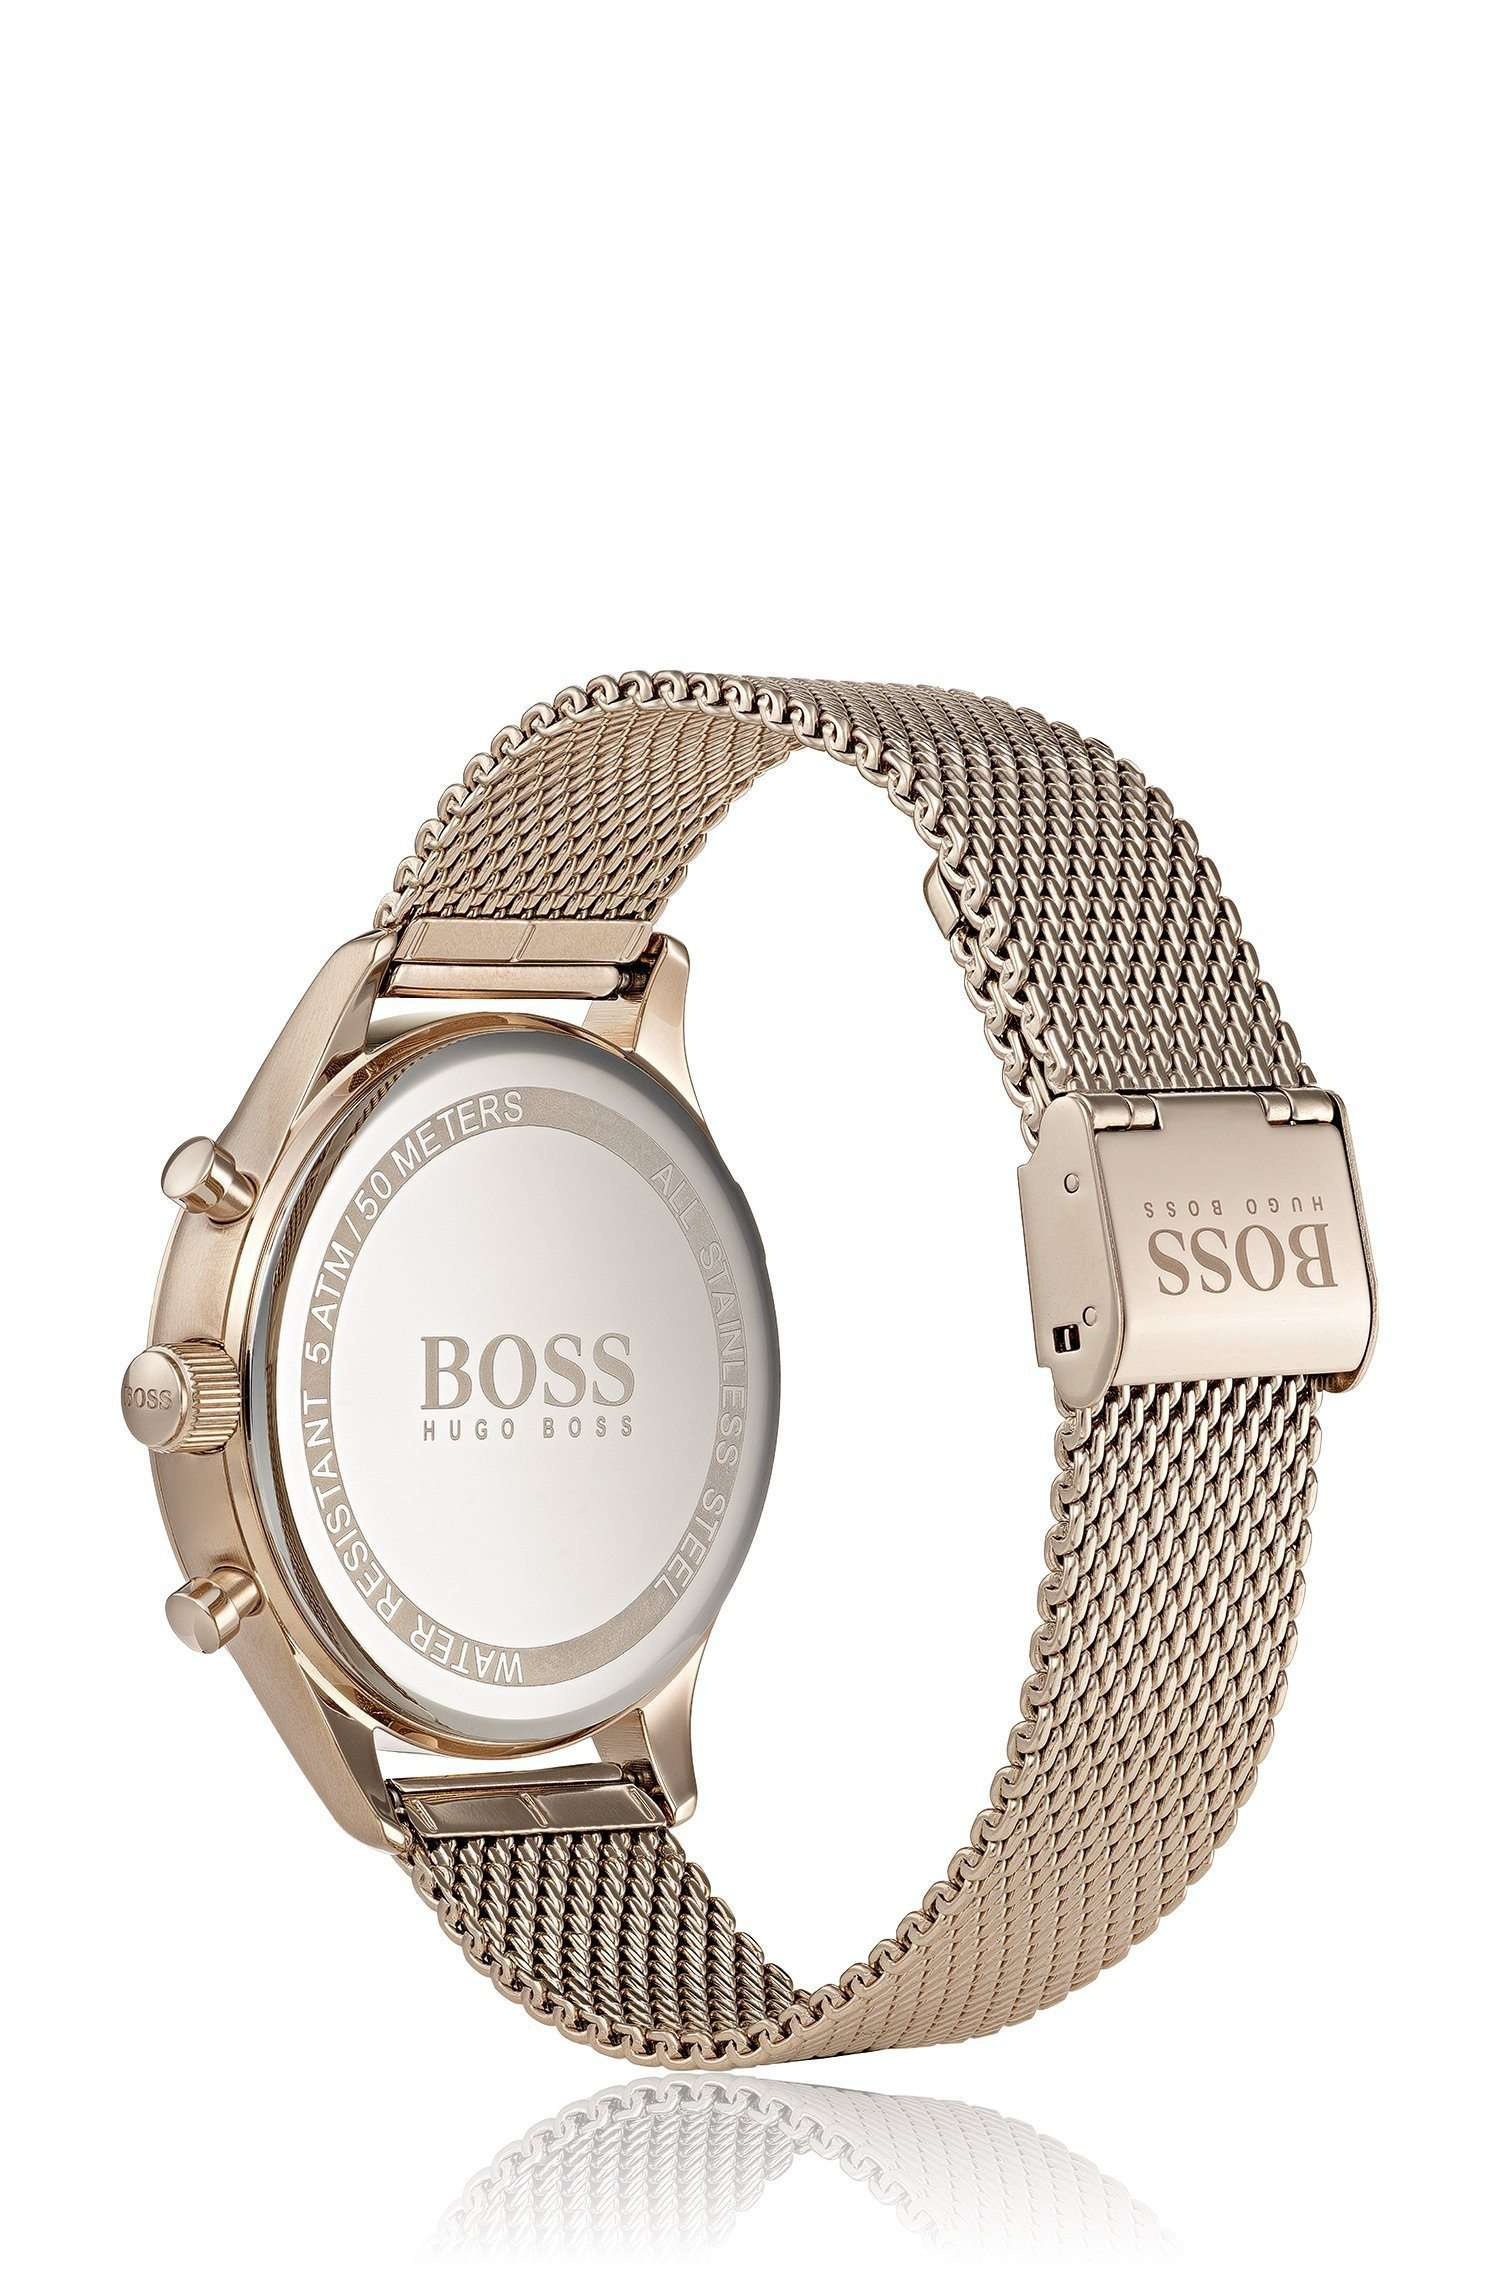 Hugo Boss HB 1513548 Men's Wrist Watch with Analog Display Steel Umisfashion Store